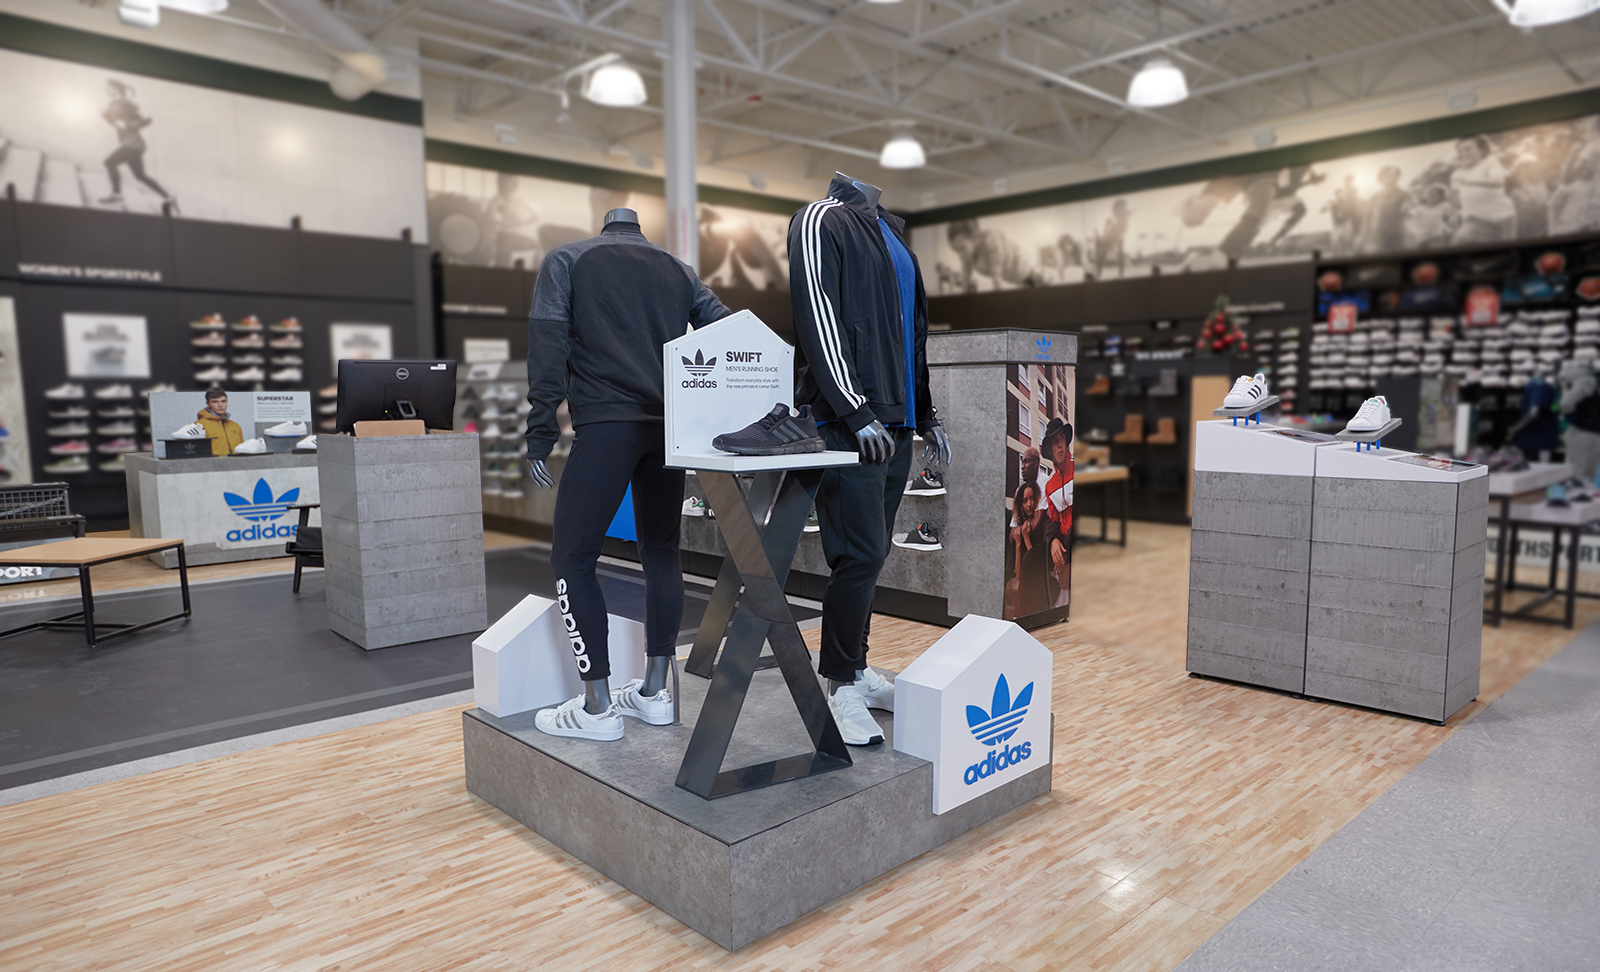 One of the many custom displays The Bernard Group designed, prototyped, and engineered for Adidas.